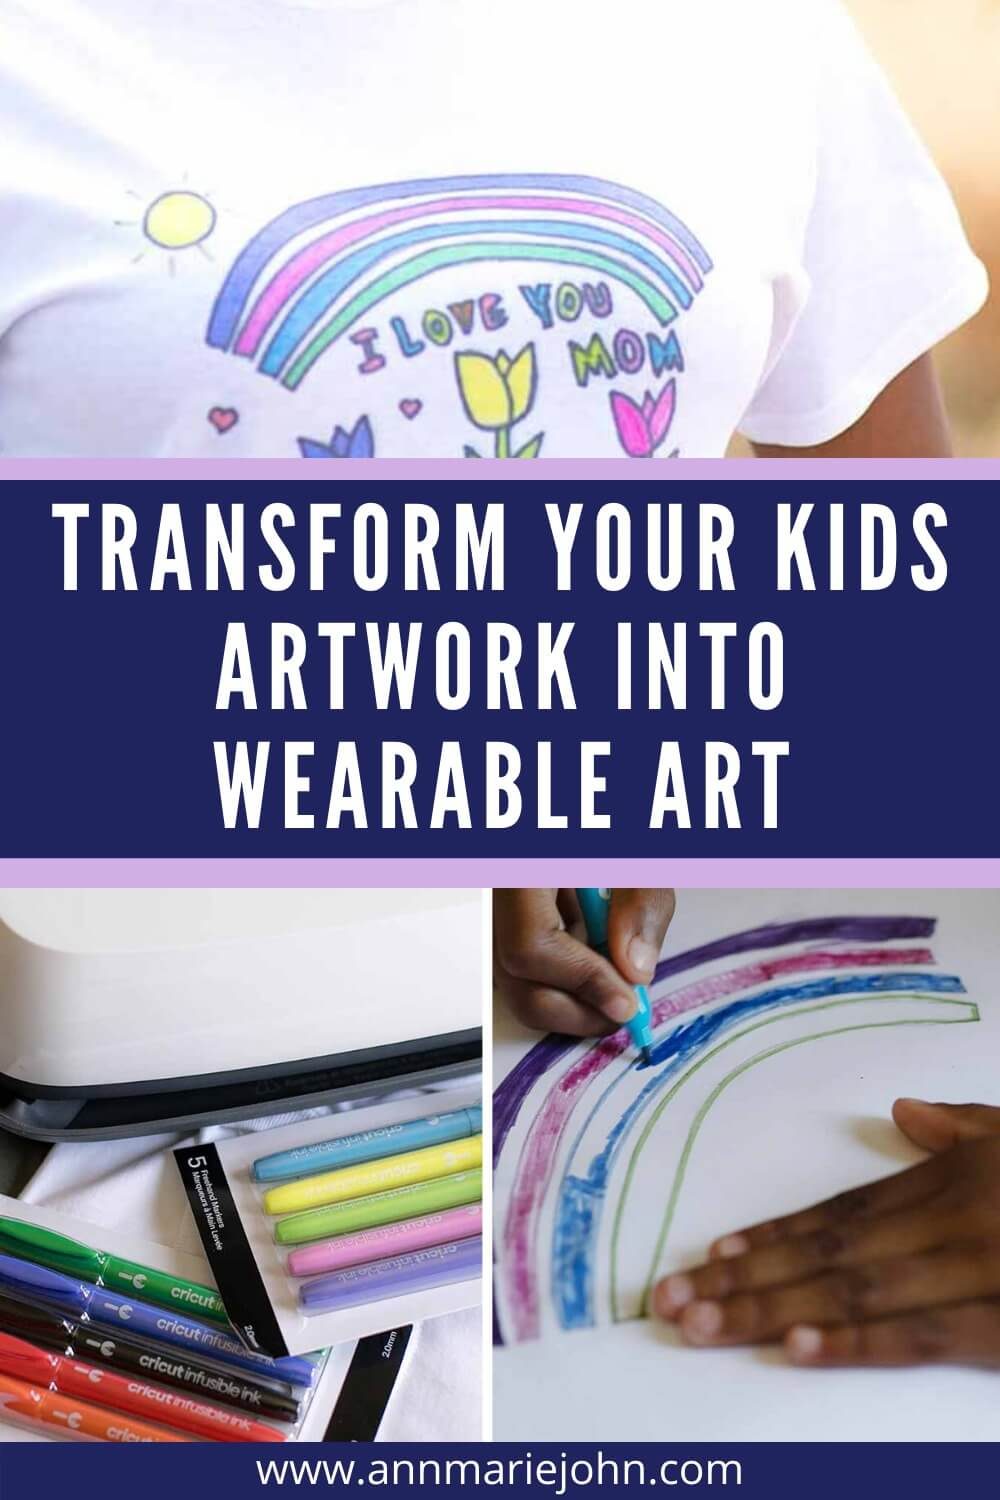 Transform Your Kids Artwork into Wearable Art